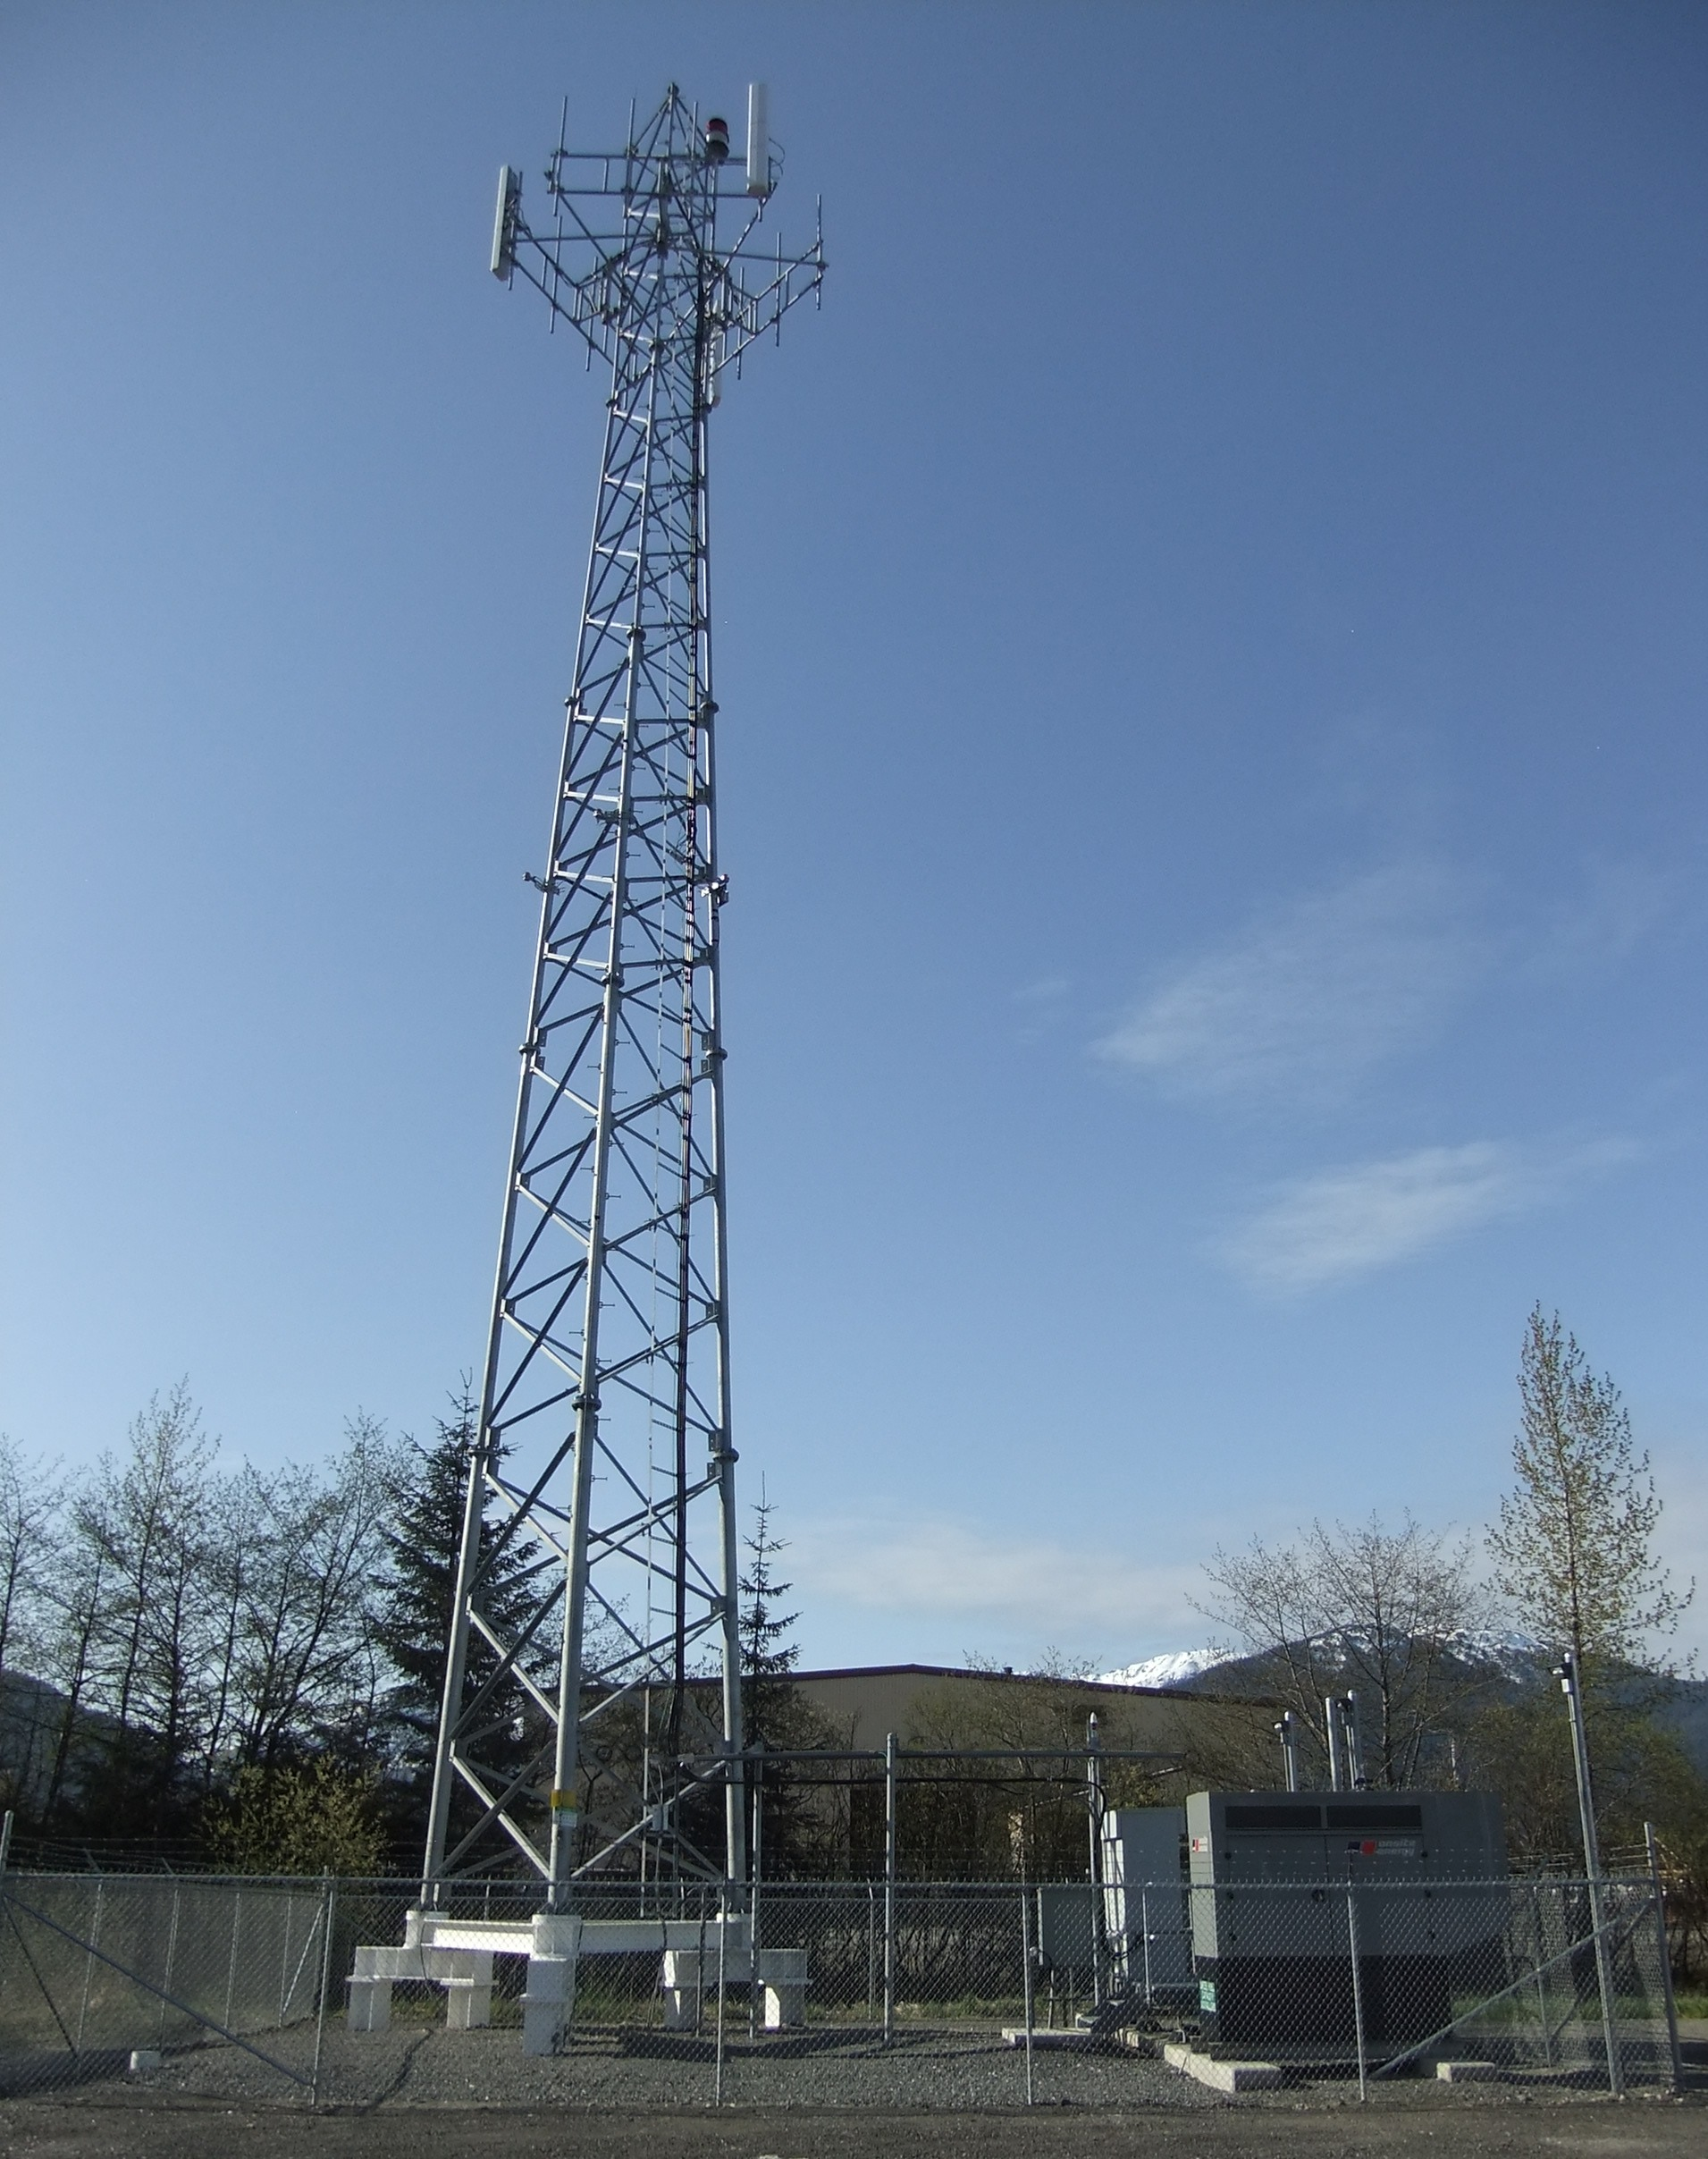 Communications tower in the Mendenhall Valley. (Photo by Rosemarie Alexander)